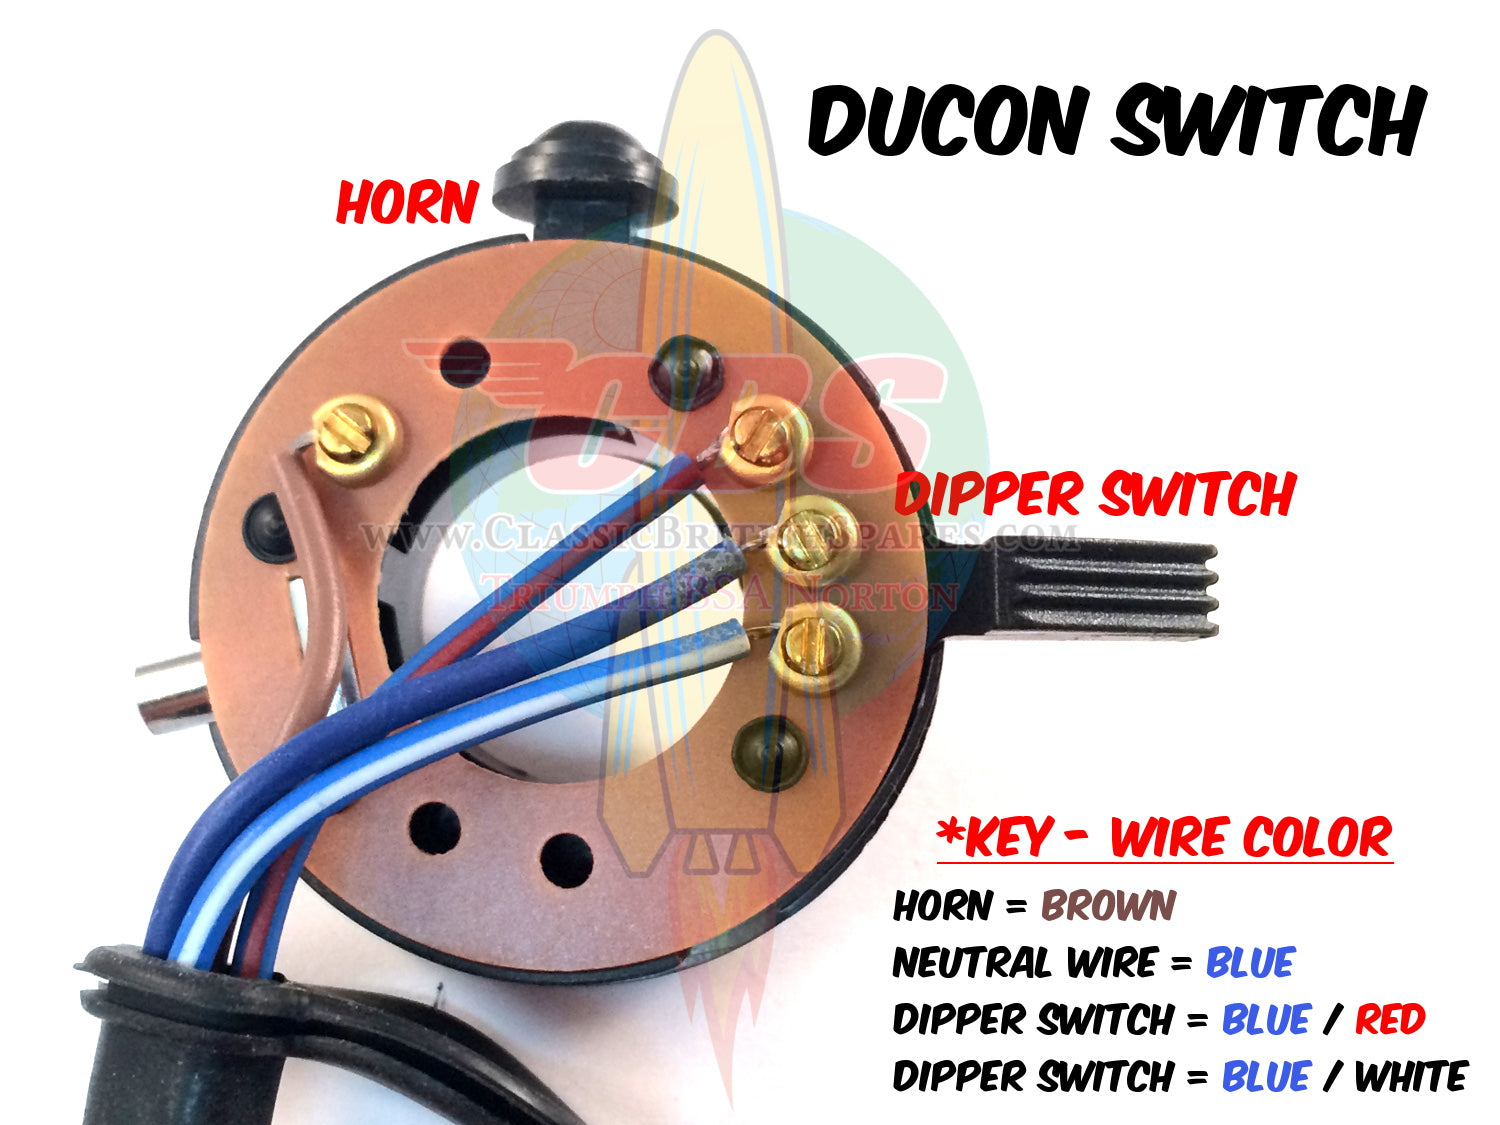 Wipac Ducon Wiring_8fc168b4 e9e9 415d 84e9 456d2c3e561a?13167179115134113755 technical files  at nearapp.co